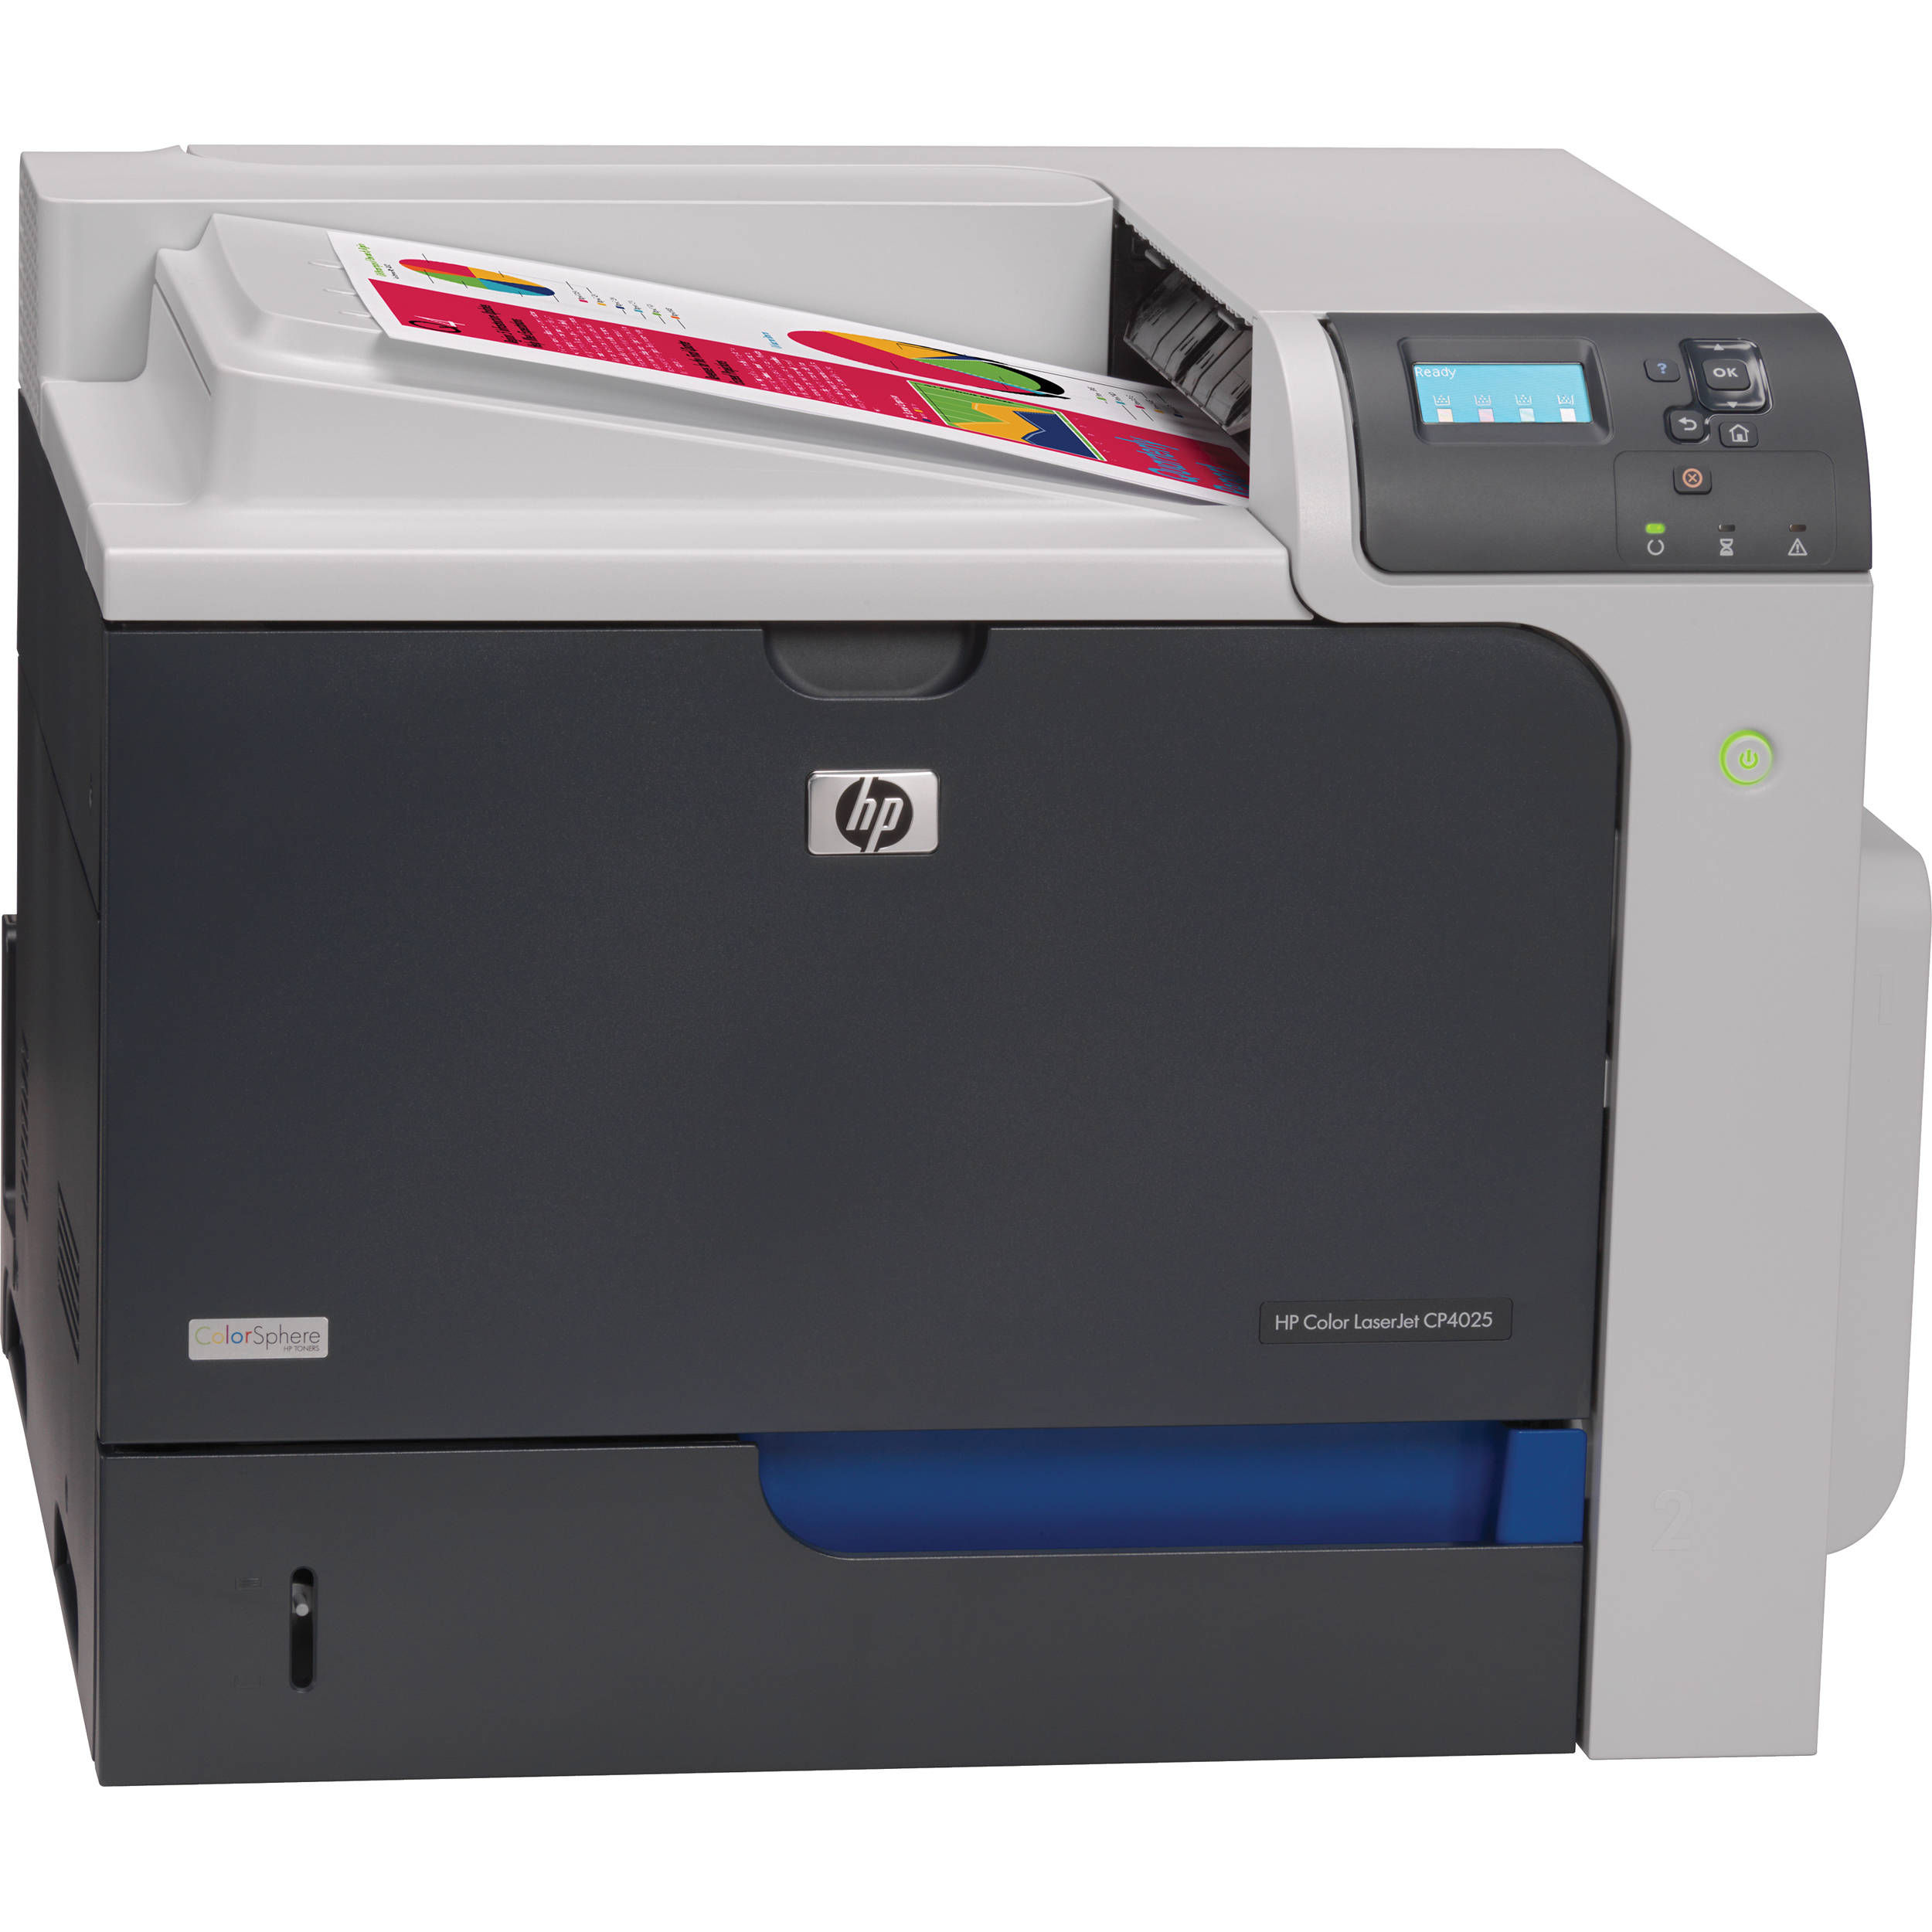 HP Color LaserJet Enterprise CP4025dn /A4, 35ppm